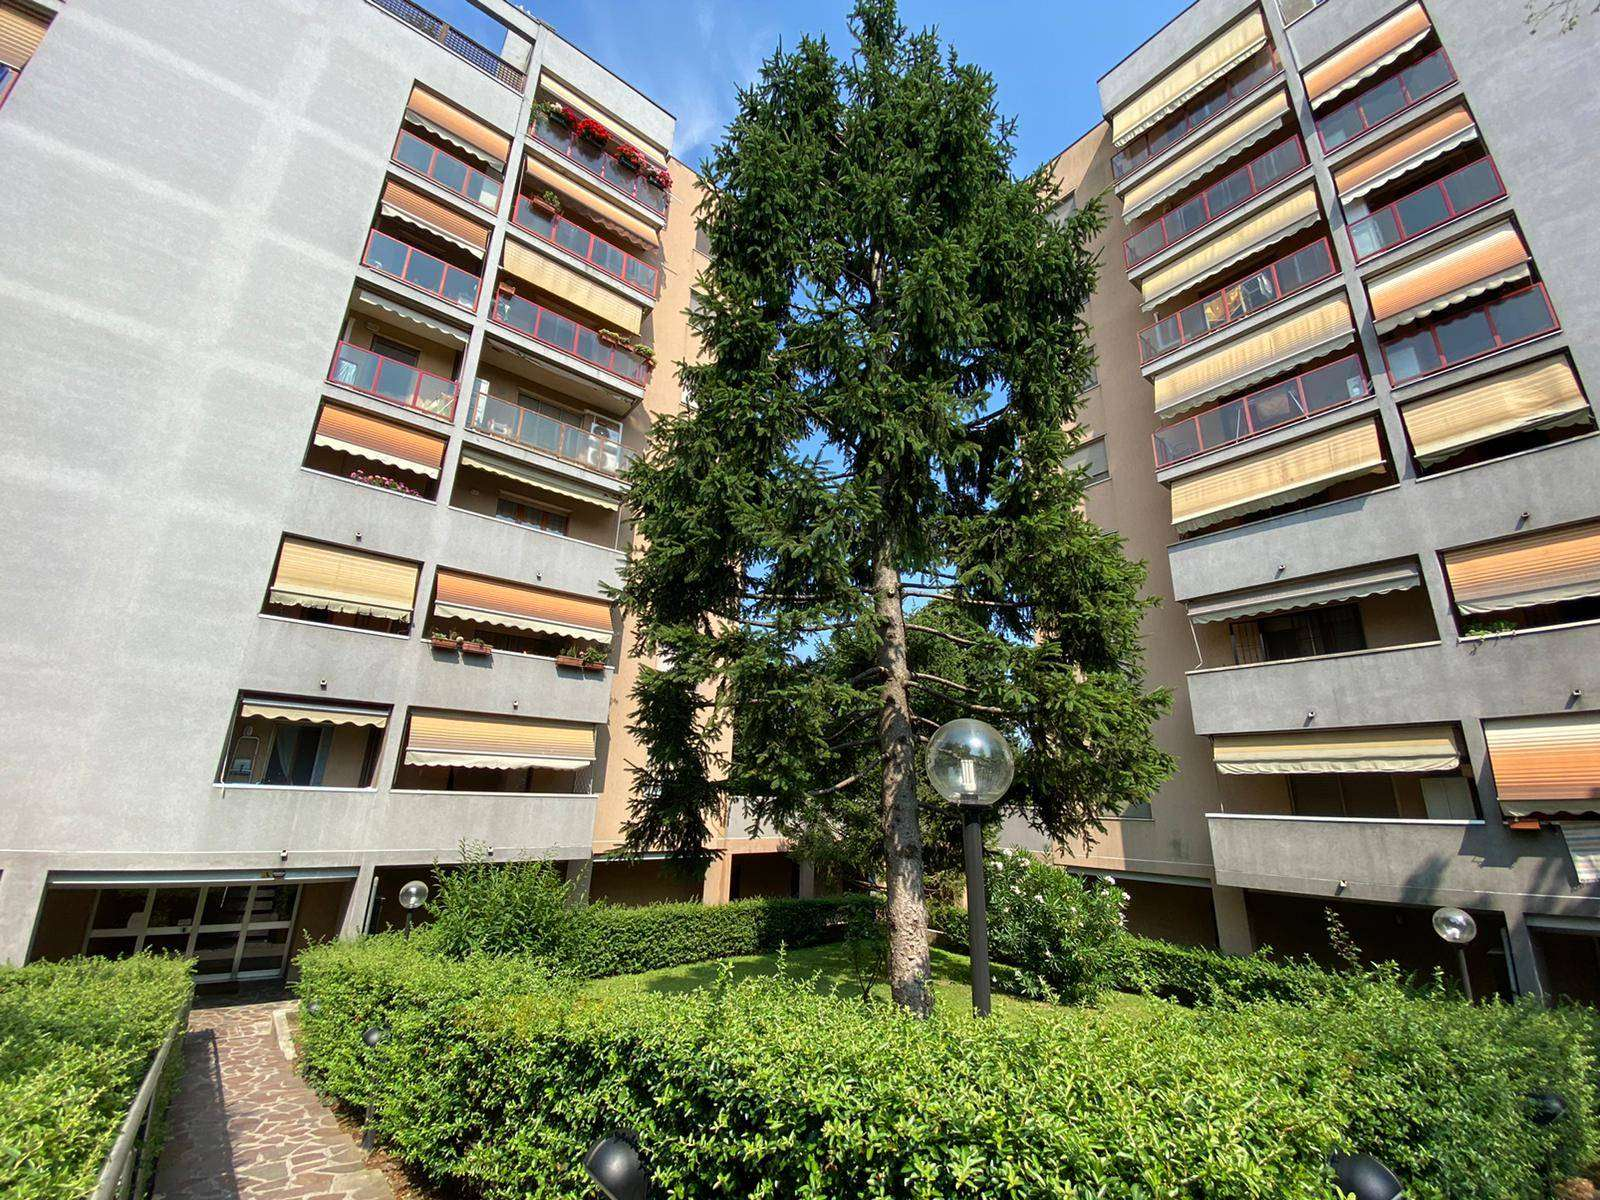 PIOLTELLO, Apartment for sale of 95 Sq. mt., Habitable, Heating Individual heating system, Energetic class: G, Epi: 300 kwh/m2 year, placed at 1° on